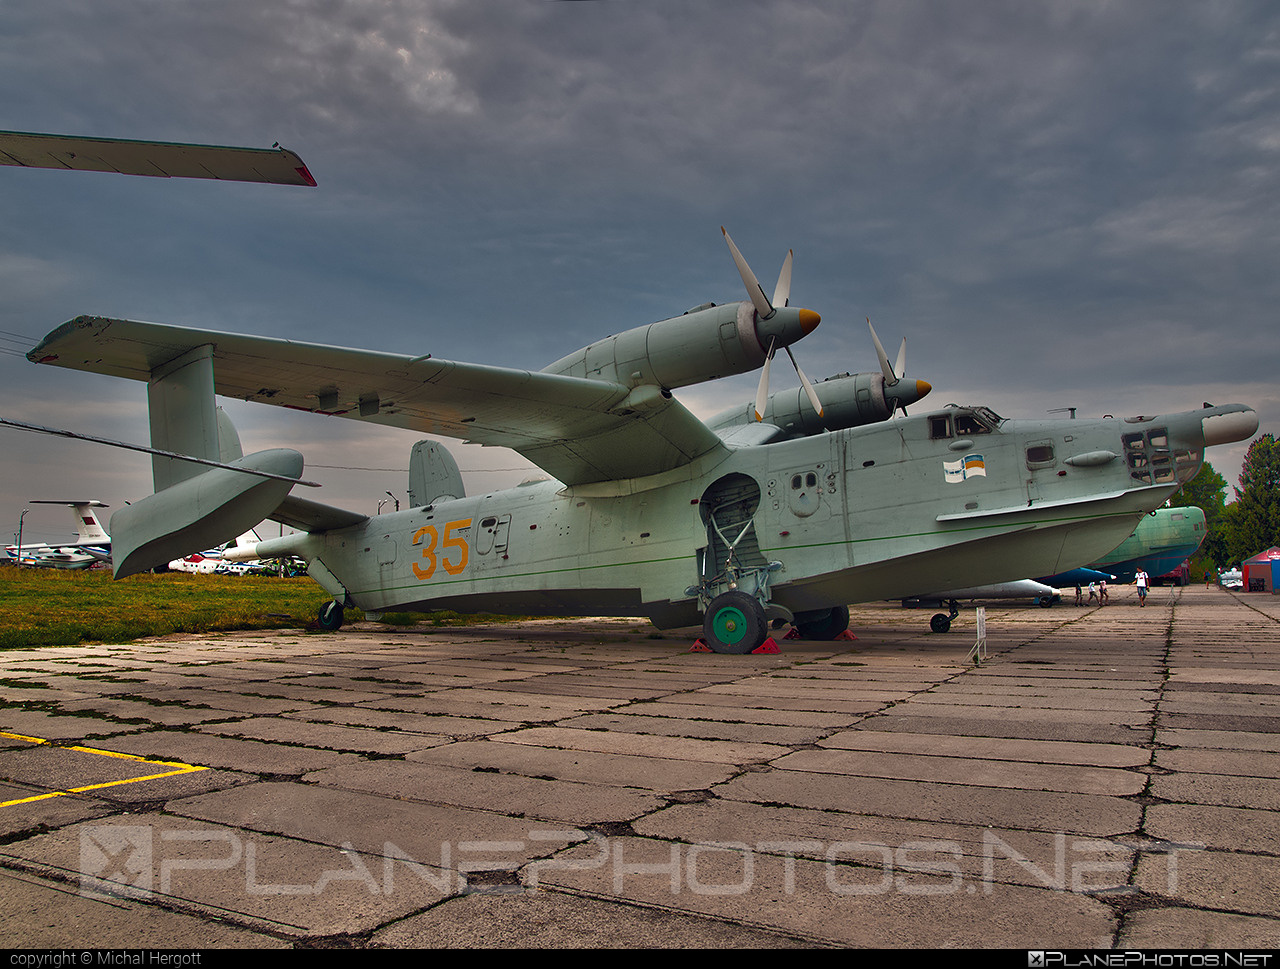 Beriev Be-12 Chayka - 35 operated by Povitryani Syly Ukrayiny (Ukrainian Air Force) #beriev #povitryanisylyukrayiny #ukrainianairforce